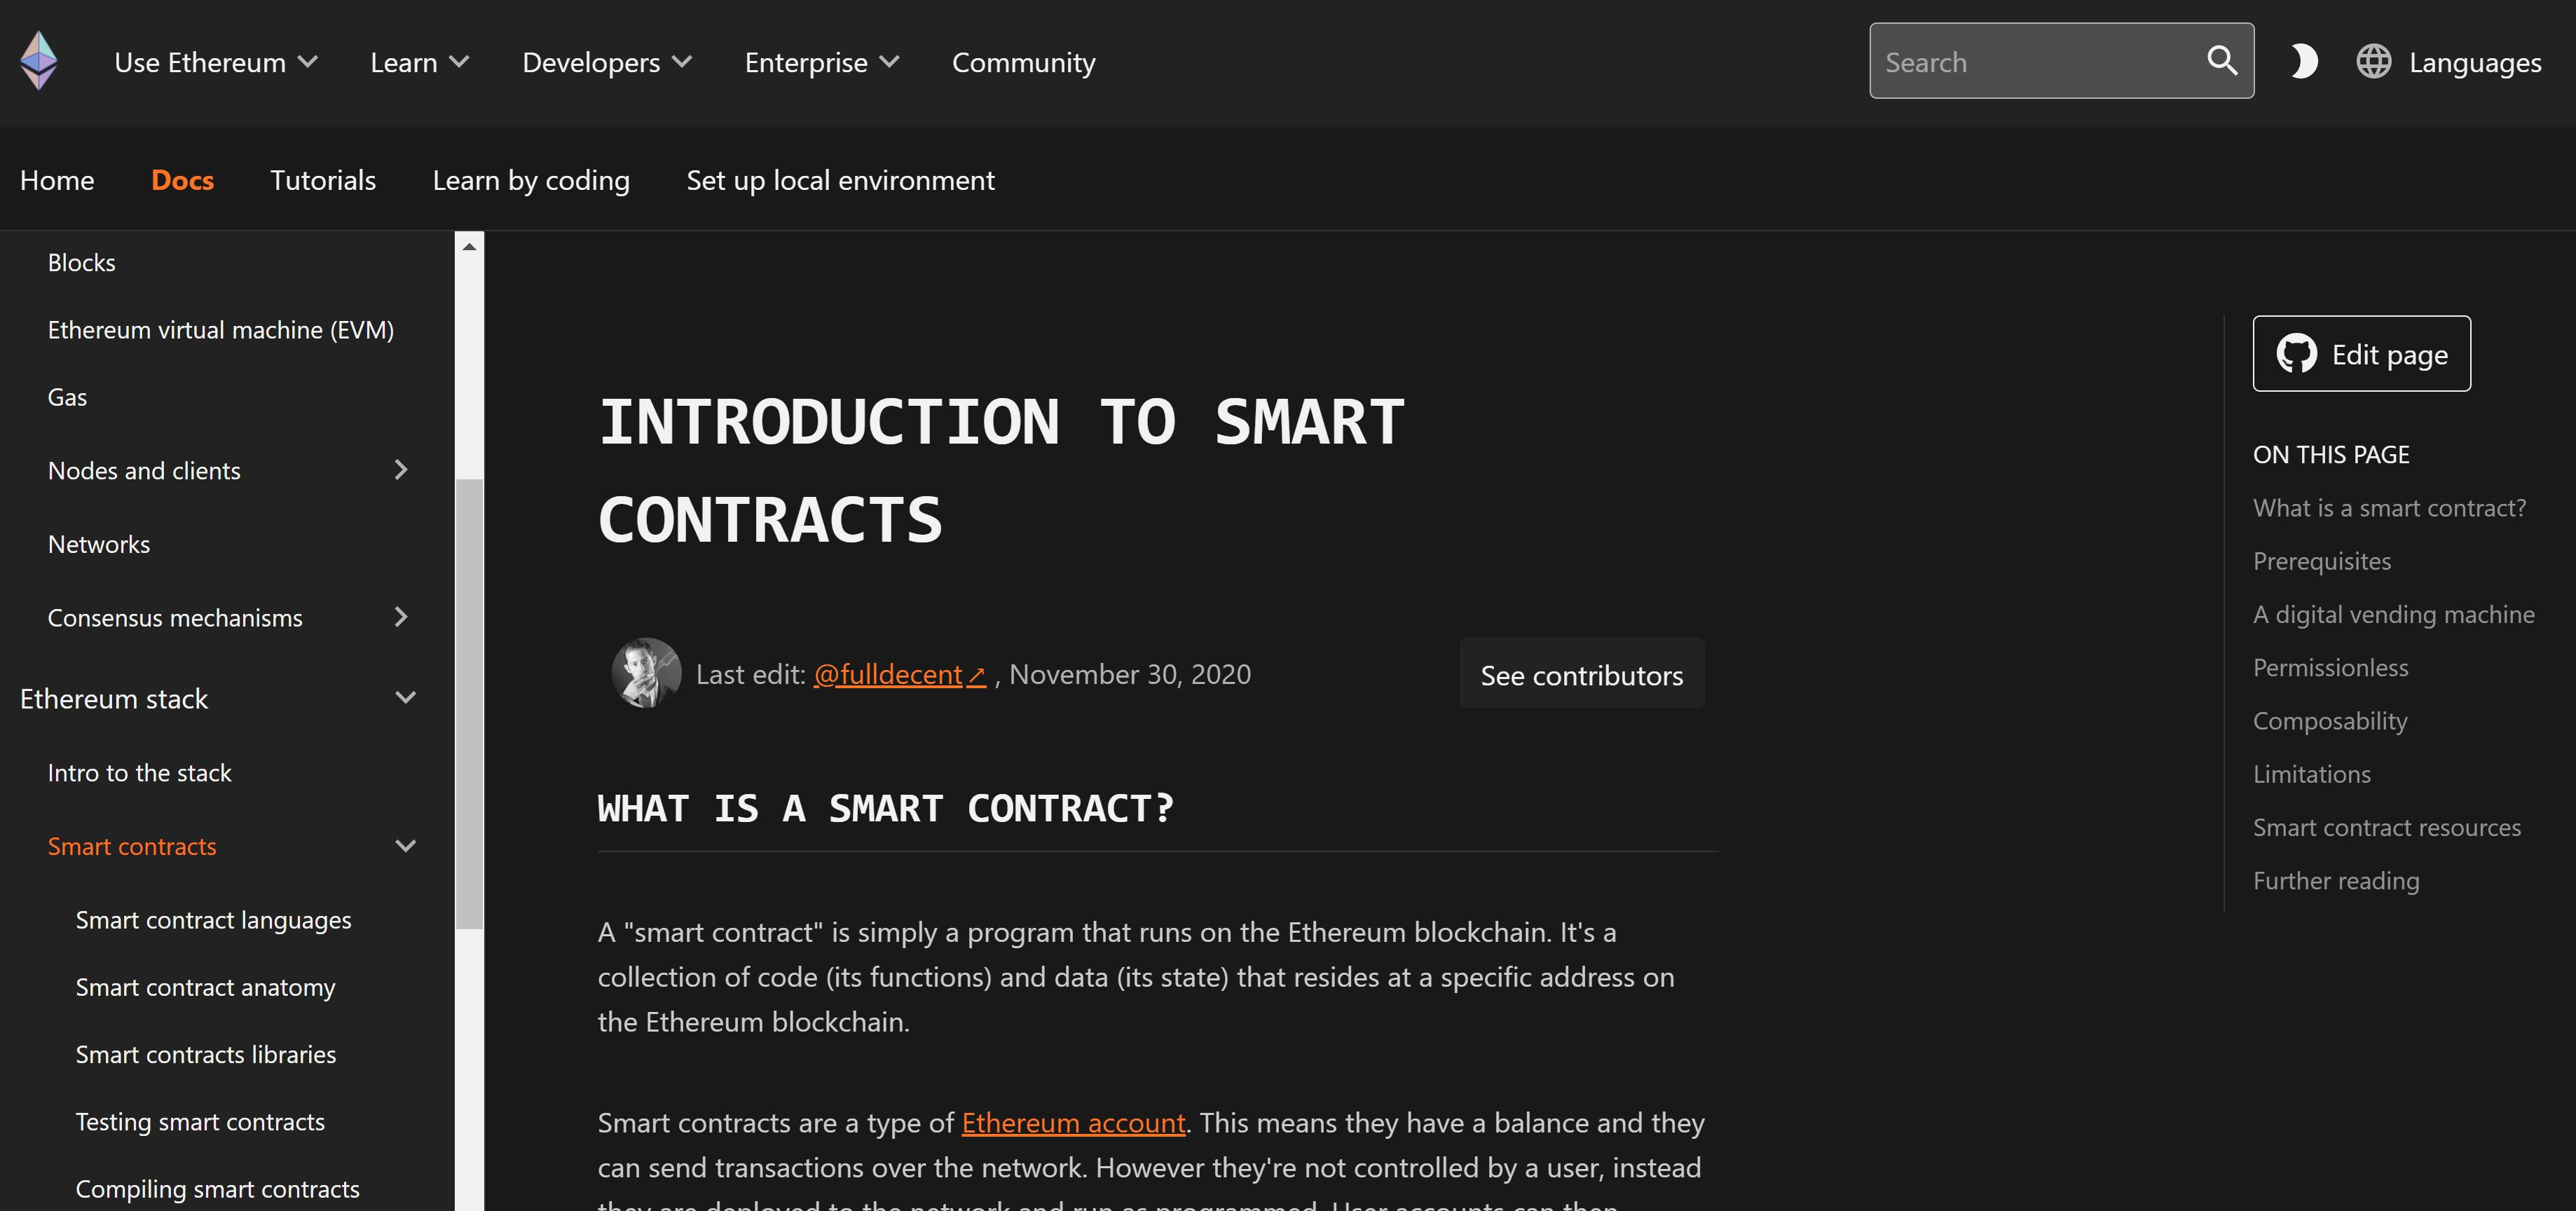 Declaración del sitio web de Ethereum Smart Contracts